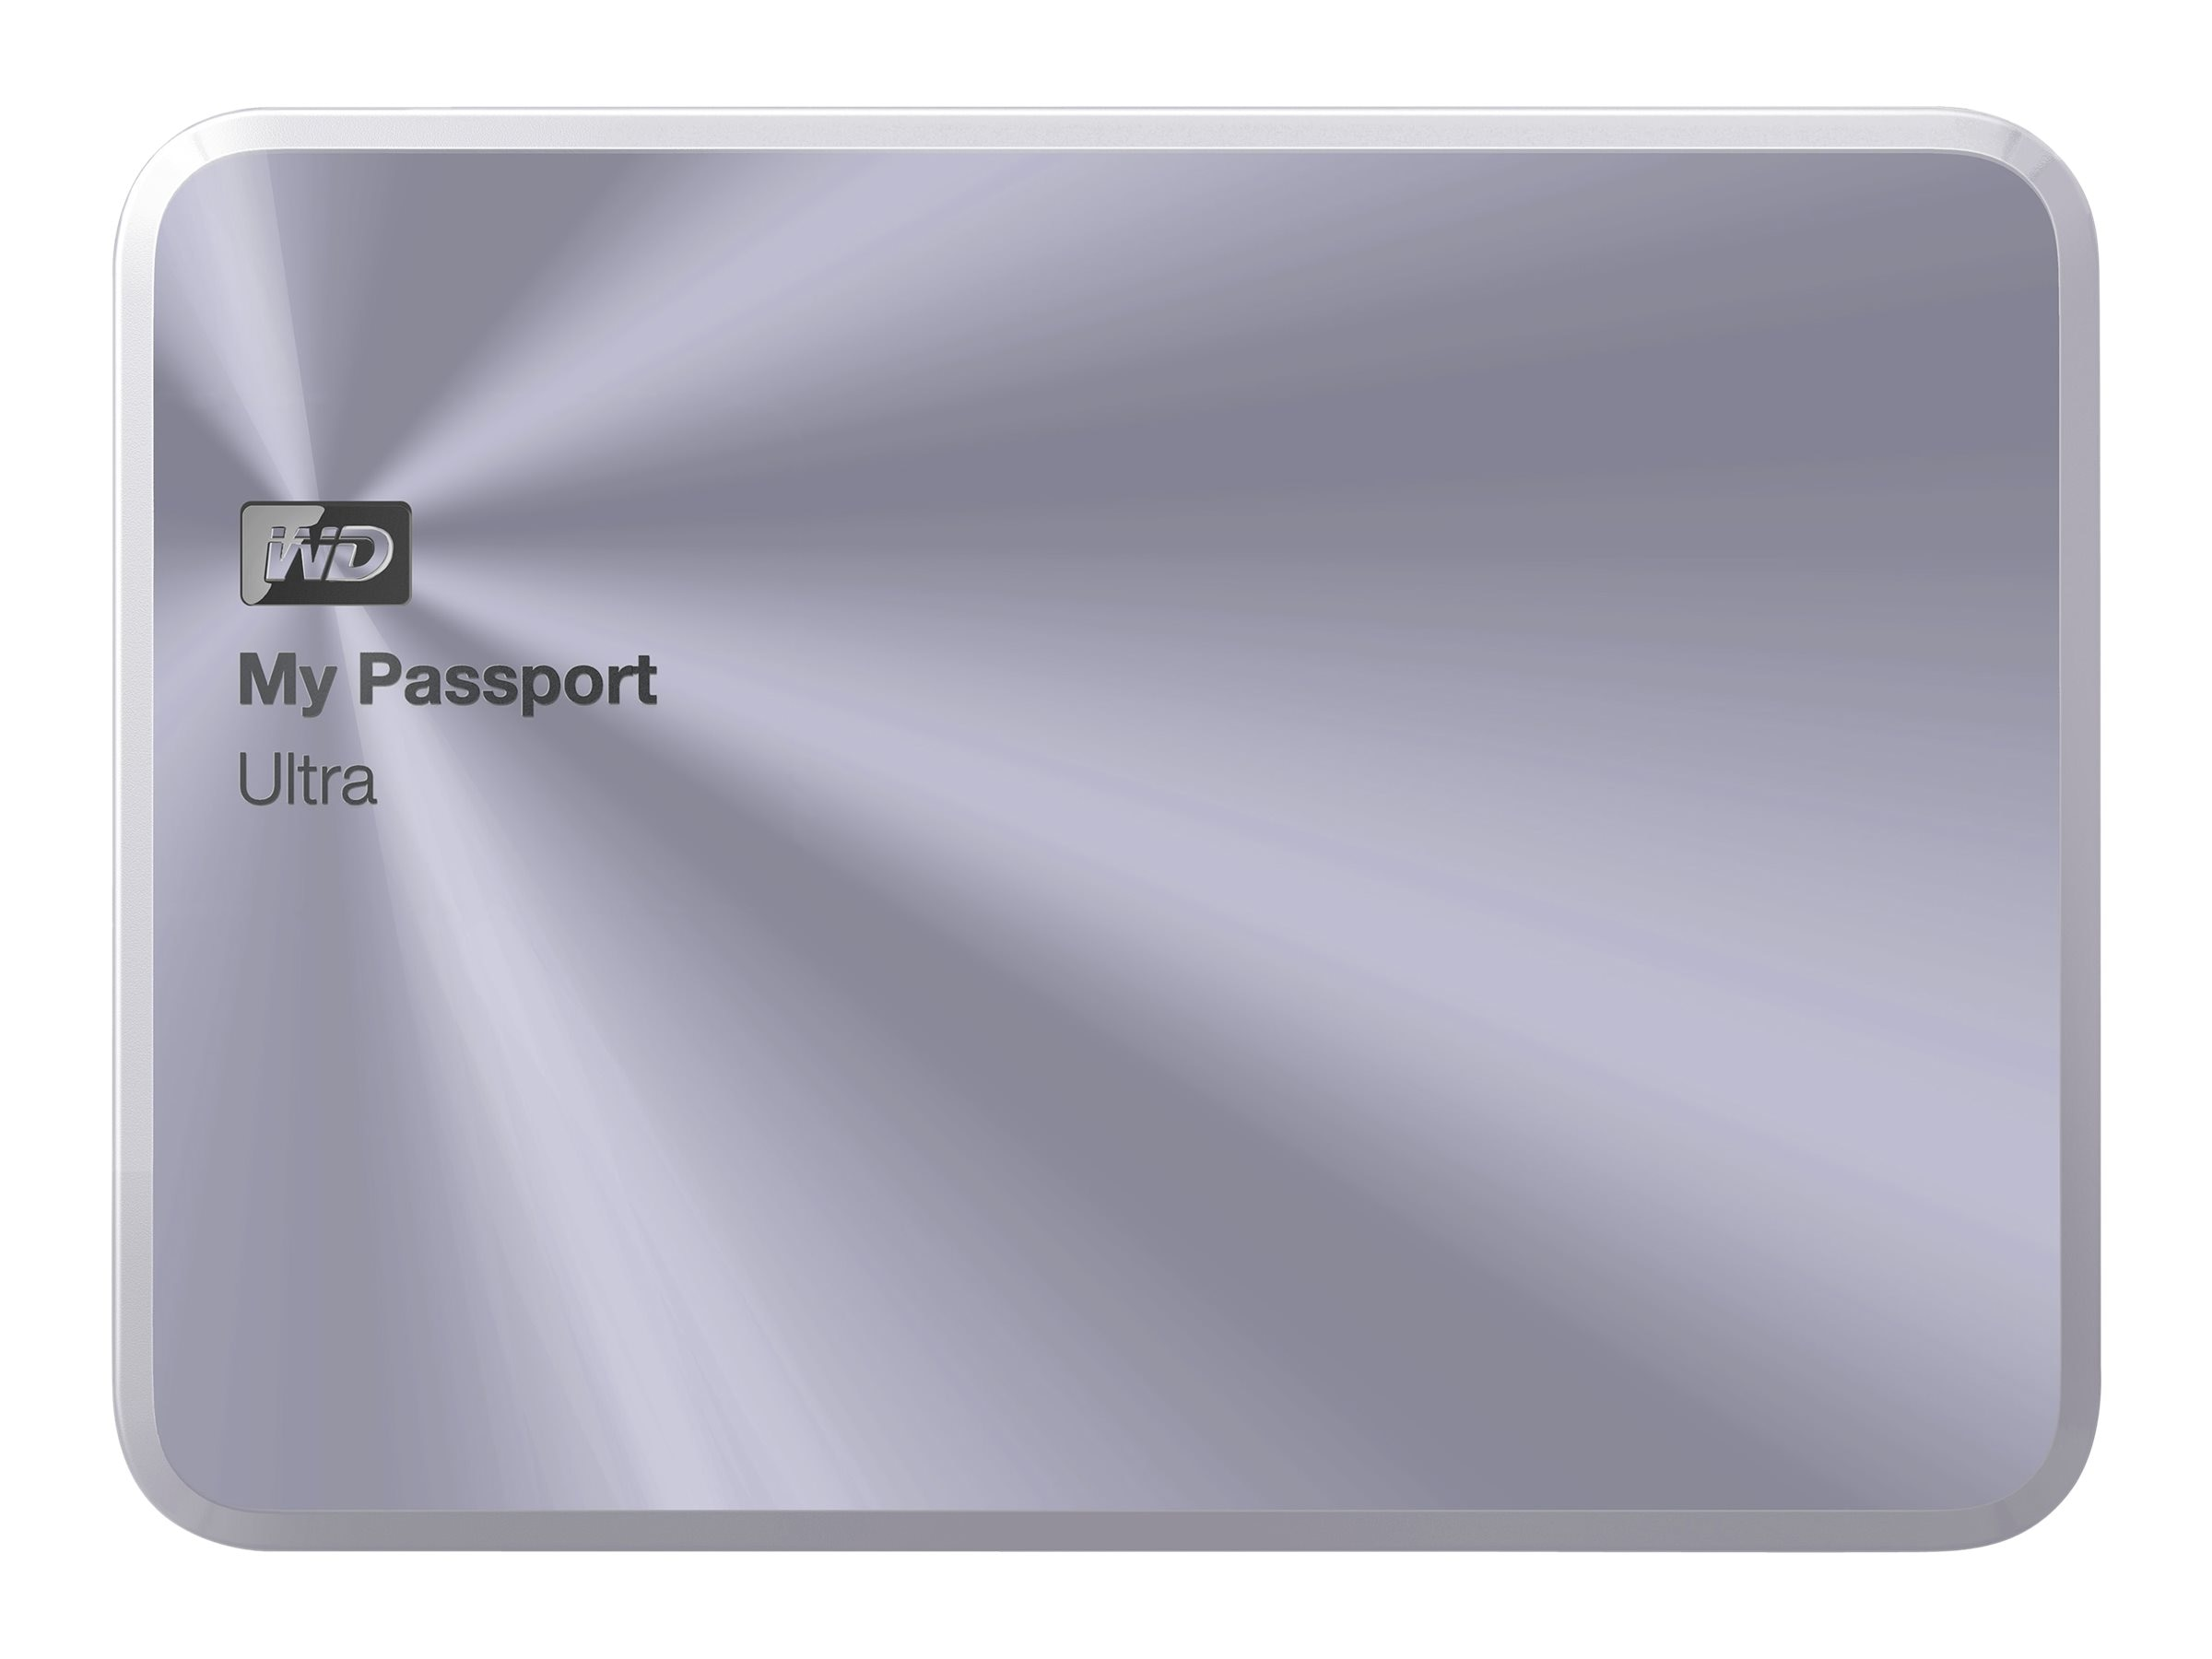 WD 4TB My Passport Ultra Metal Edition USB 3.0 Portable Hard Drive - Silver, WDBEZW0040BSL-NESN